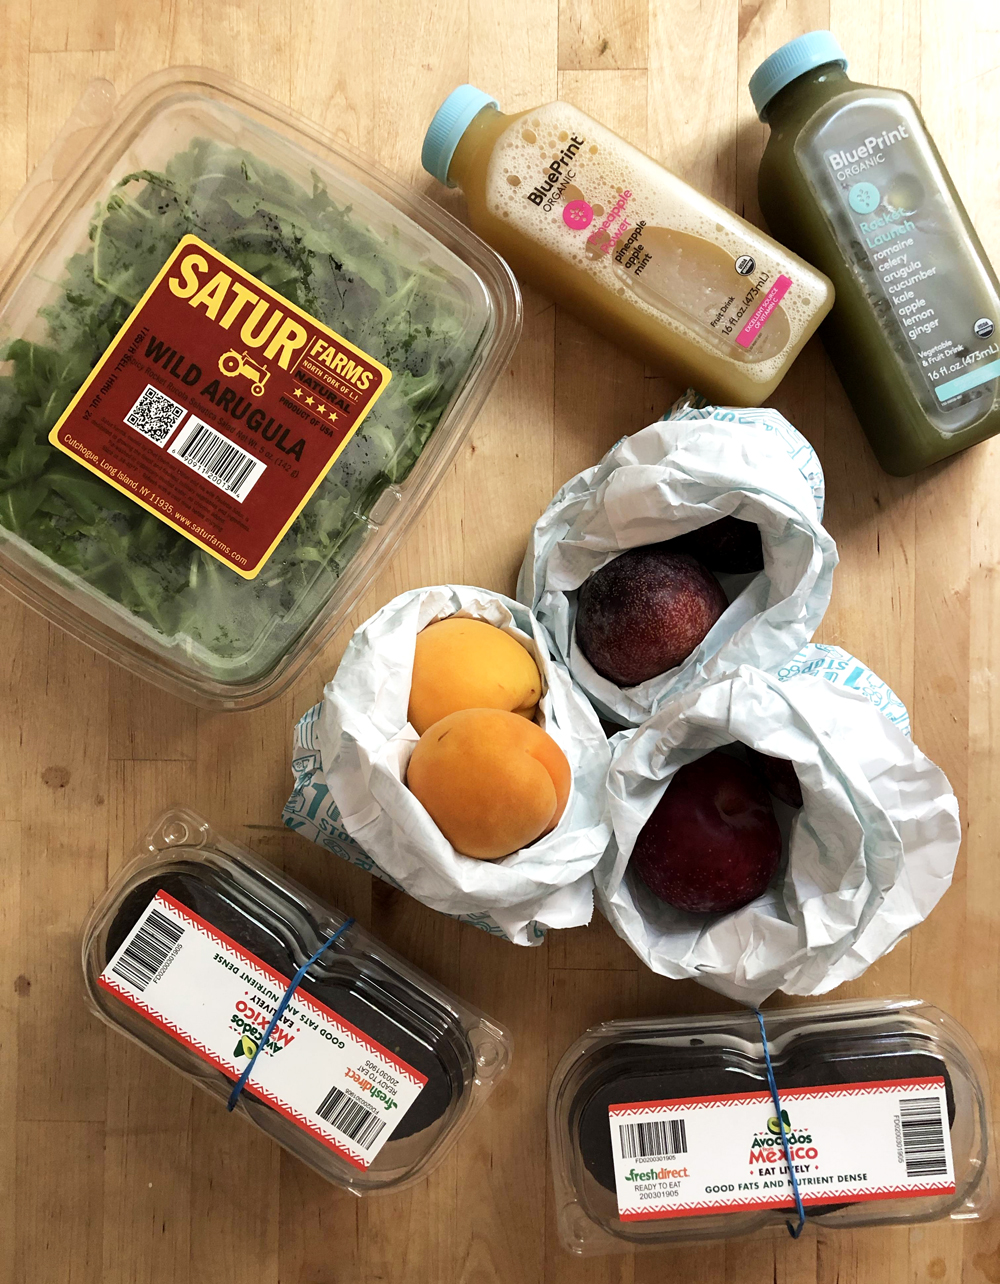 A plastic filled grocery haul. I was pleased to see that  Foodkick  has switched from plastic bags to paper for packing fruits, but everything else still needs work. I have written to Foodkick multiple times to ask them to minimize their plastic packaging.